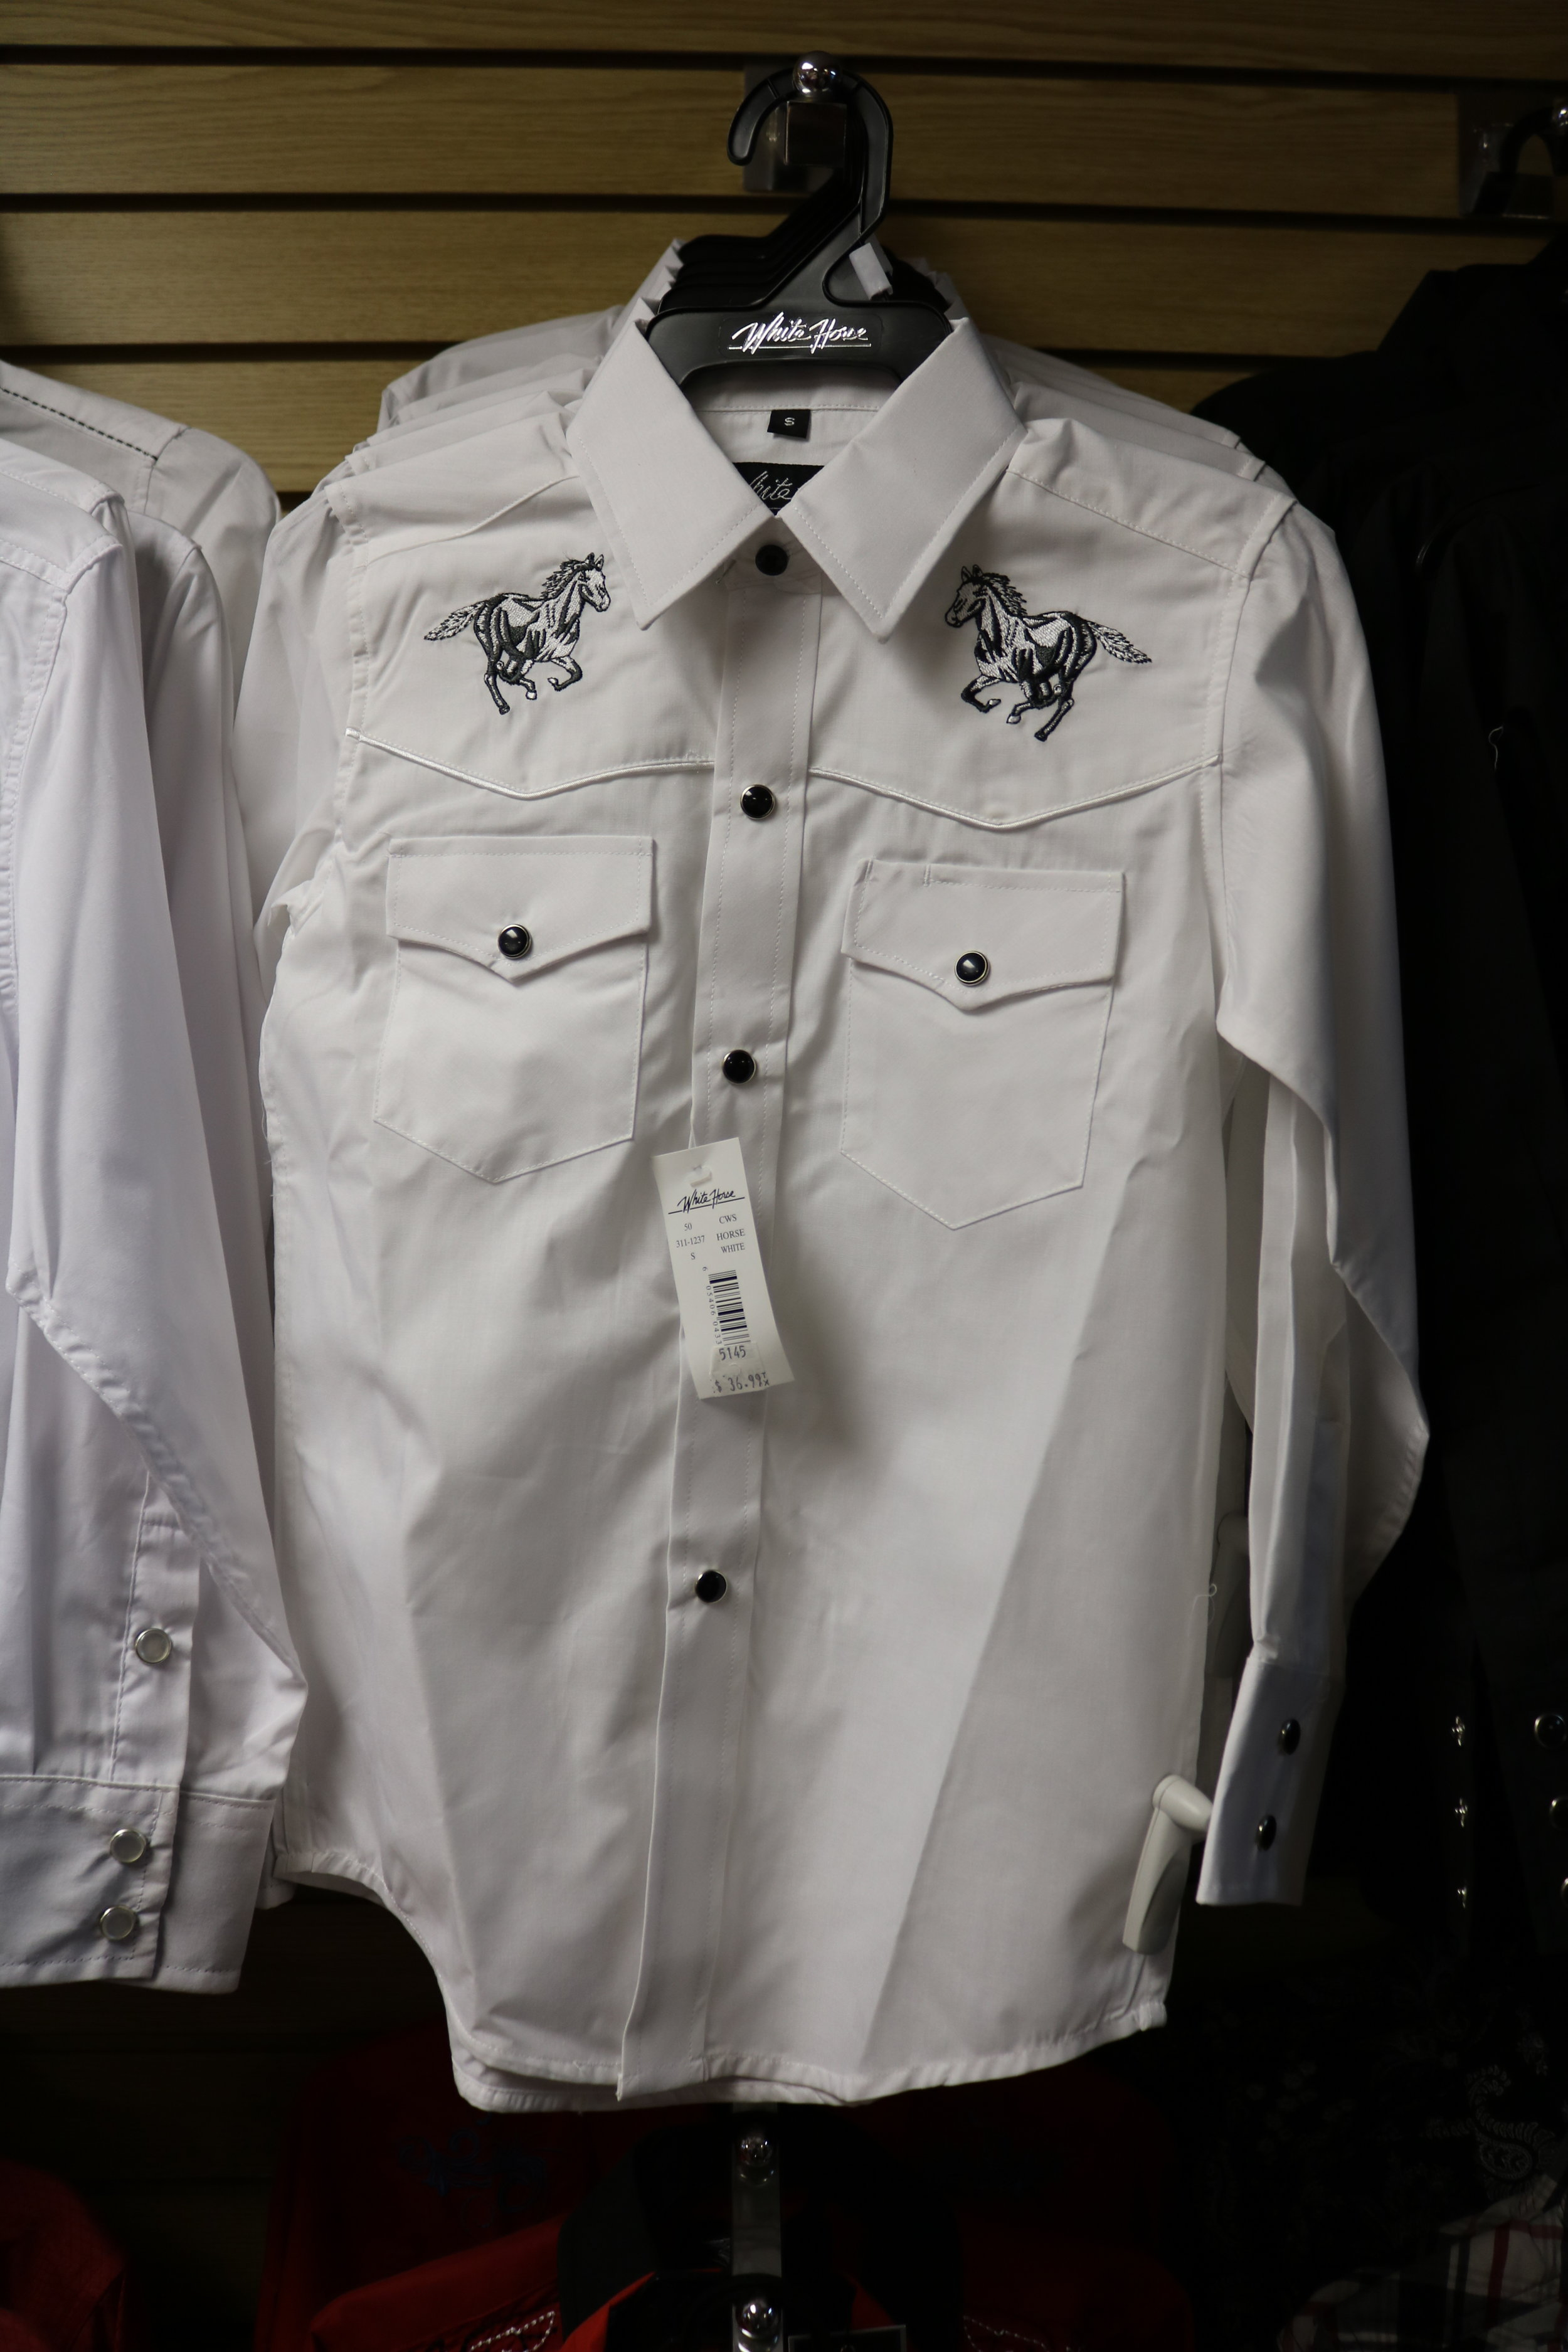 Wide variety of dress shirts.